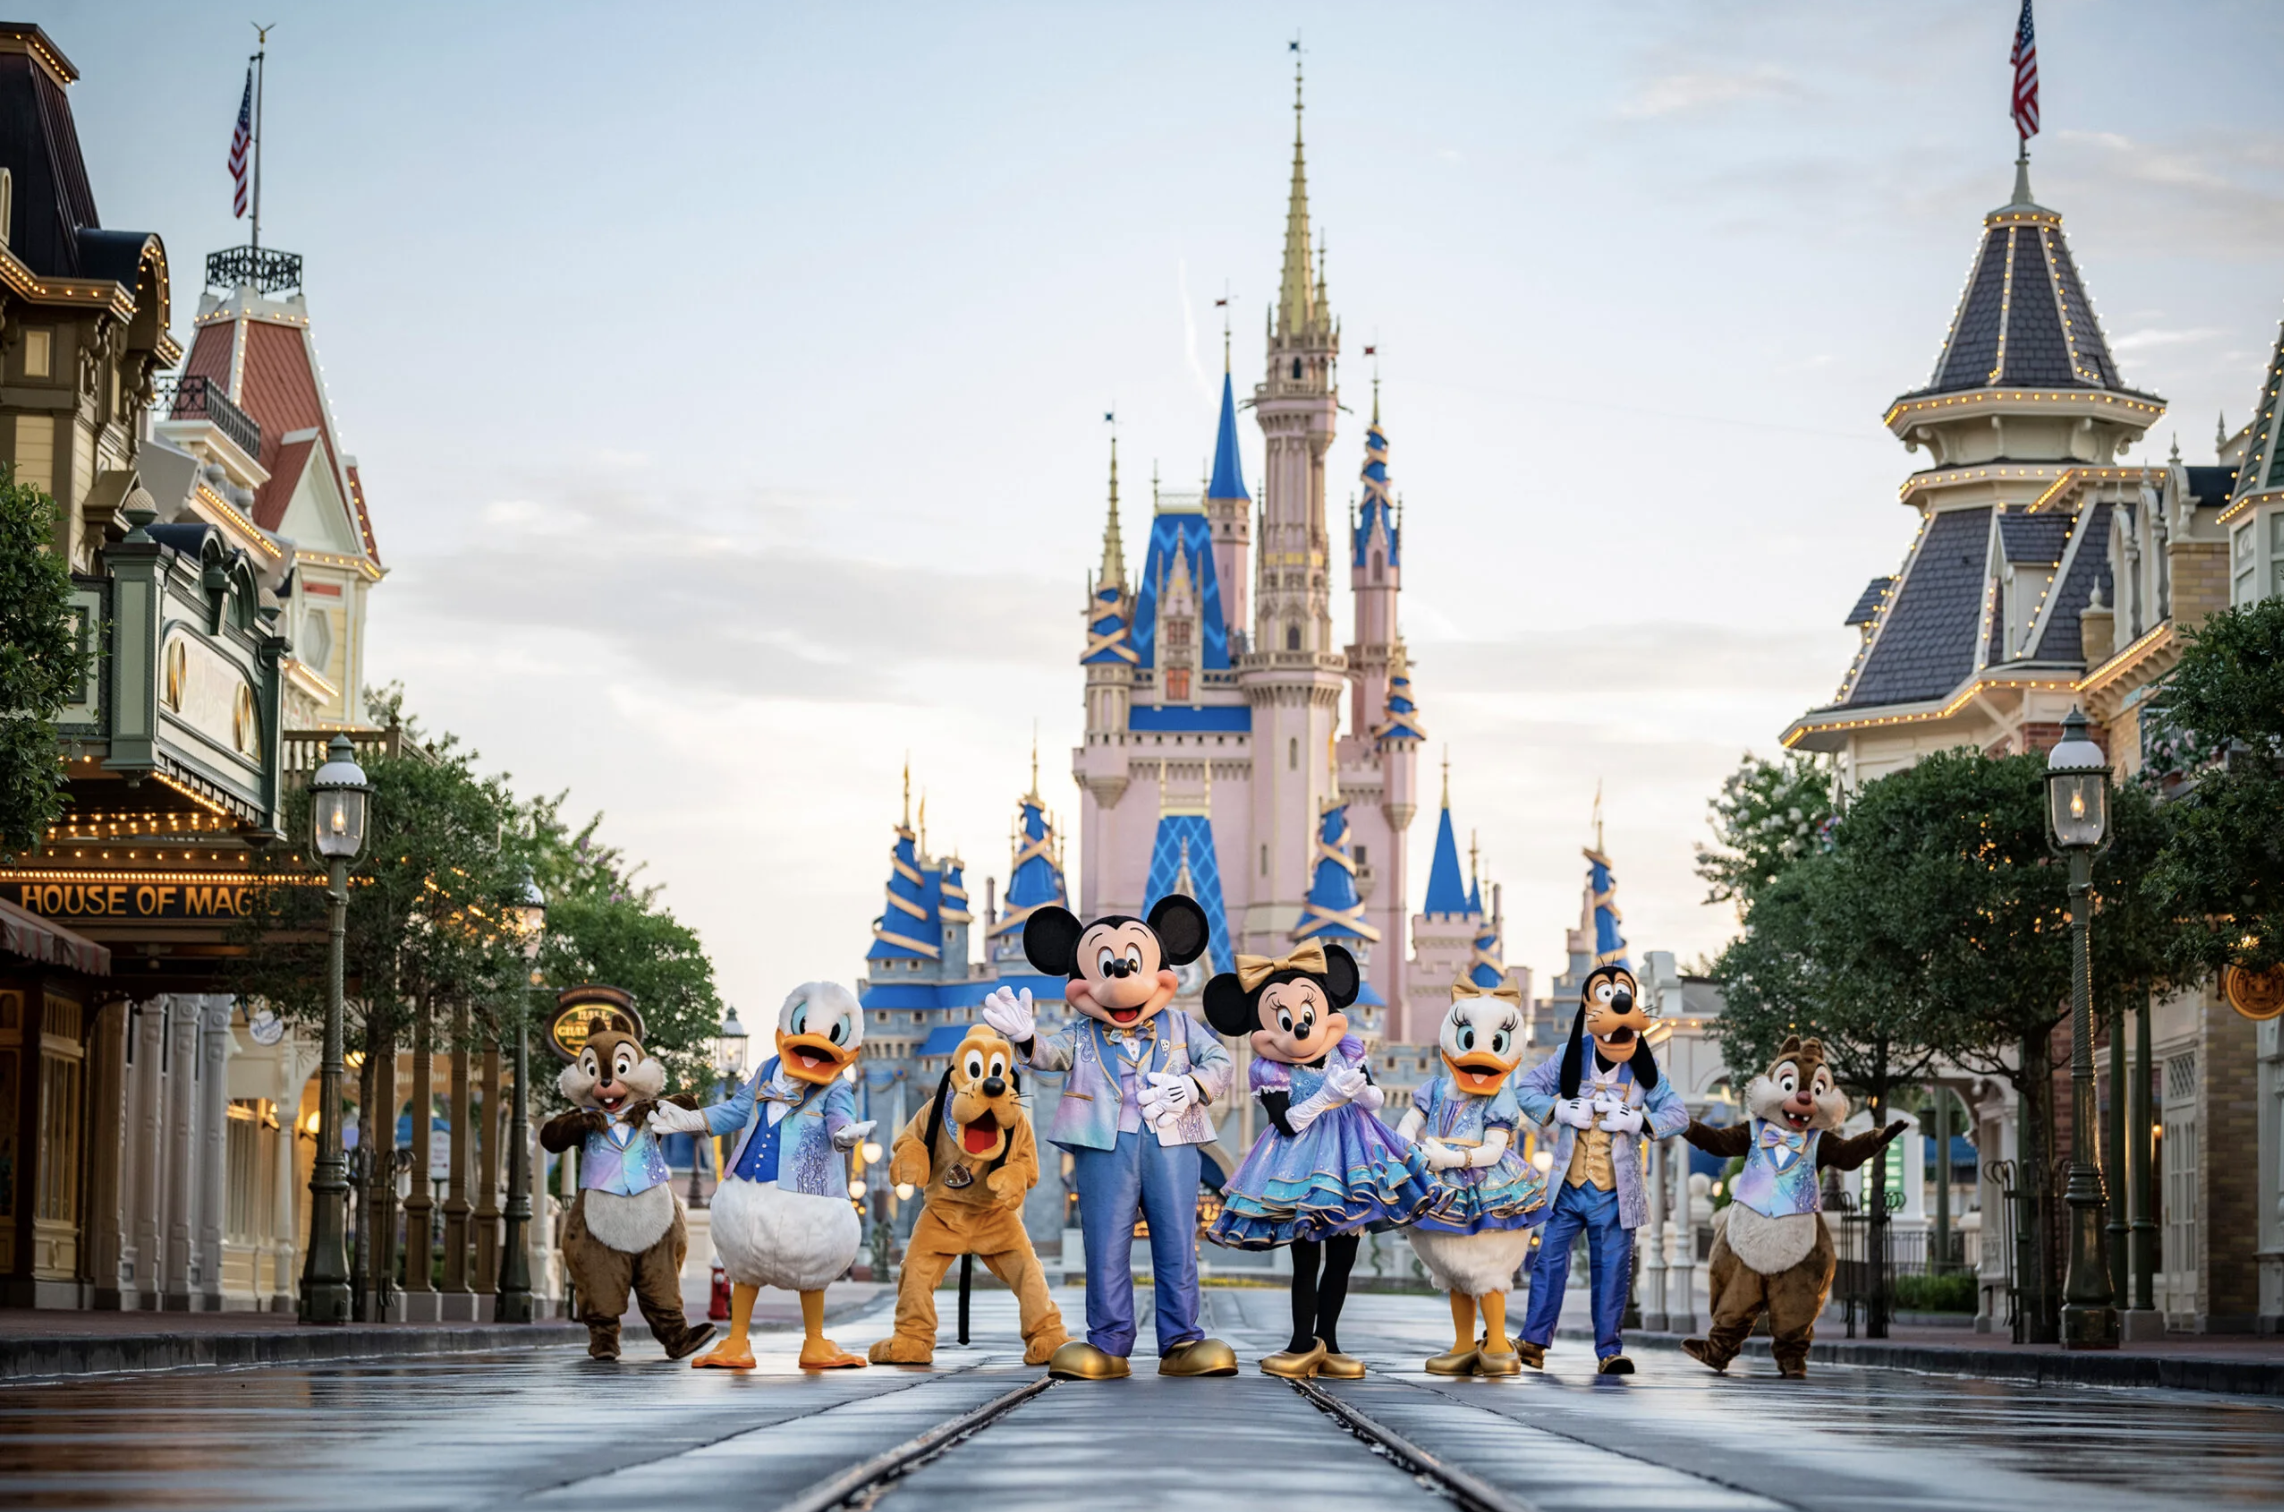 mickey and friends disney characters in their 50th anniversary sparkly EARidescence outfits in front of Cinderella Castle at Magic Kingdom